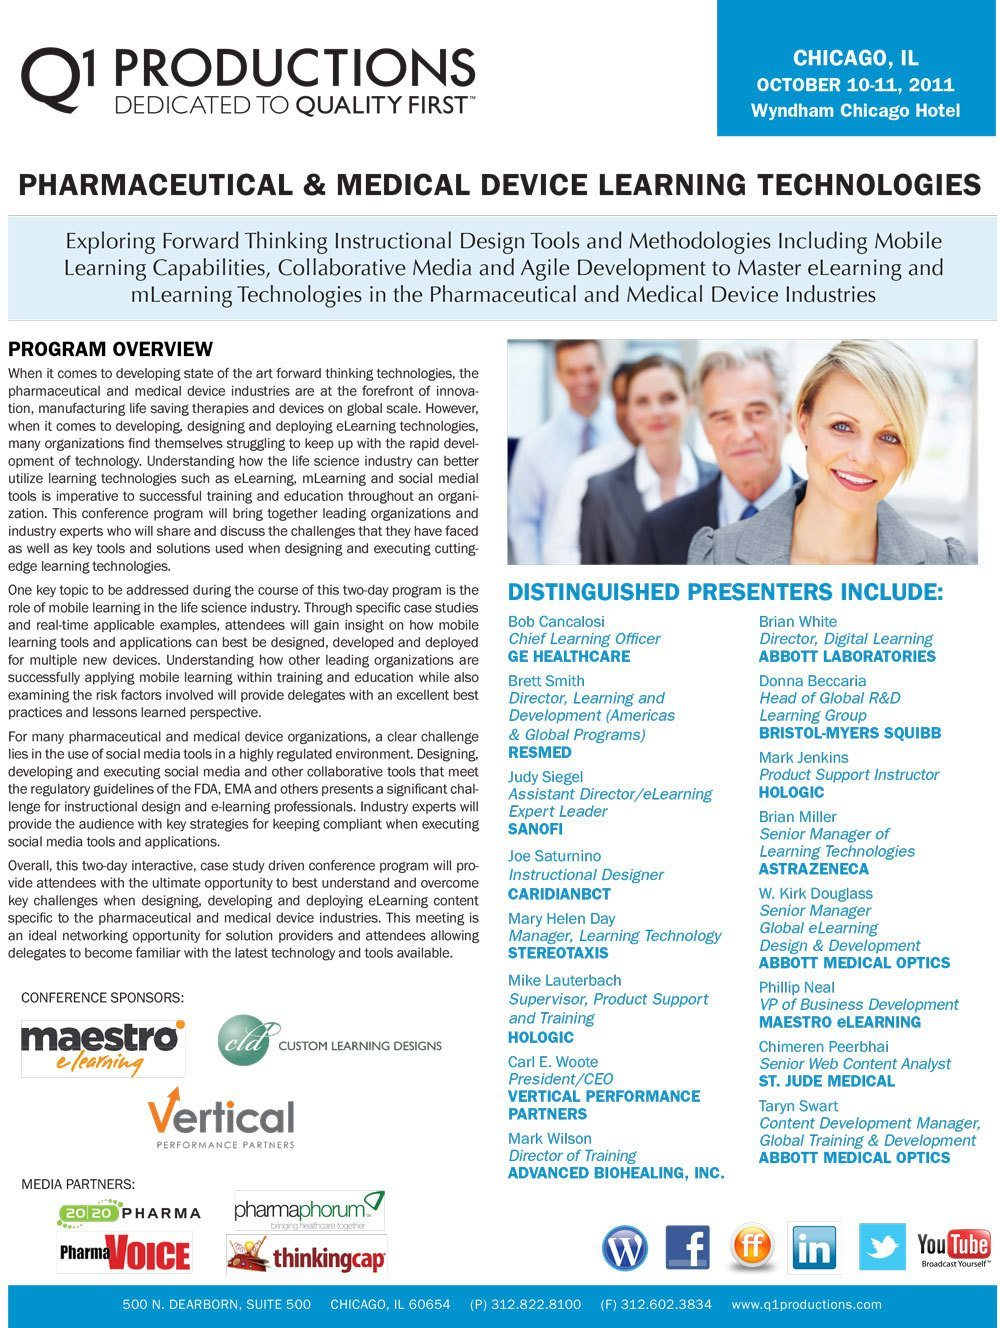 Learning-Technologies-Agenda-chicago_01